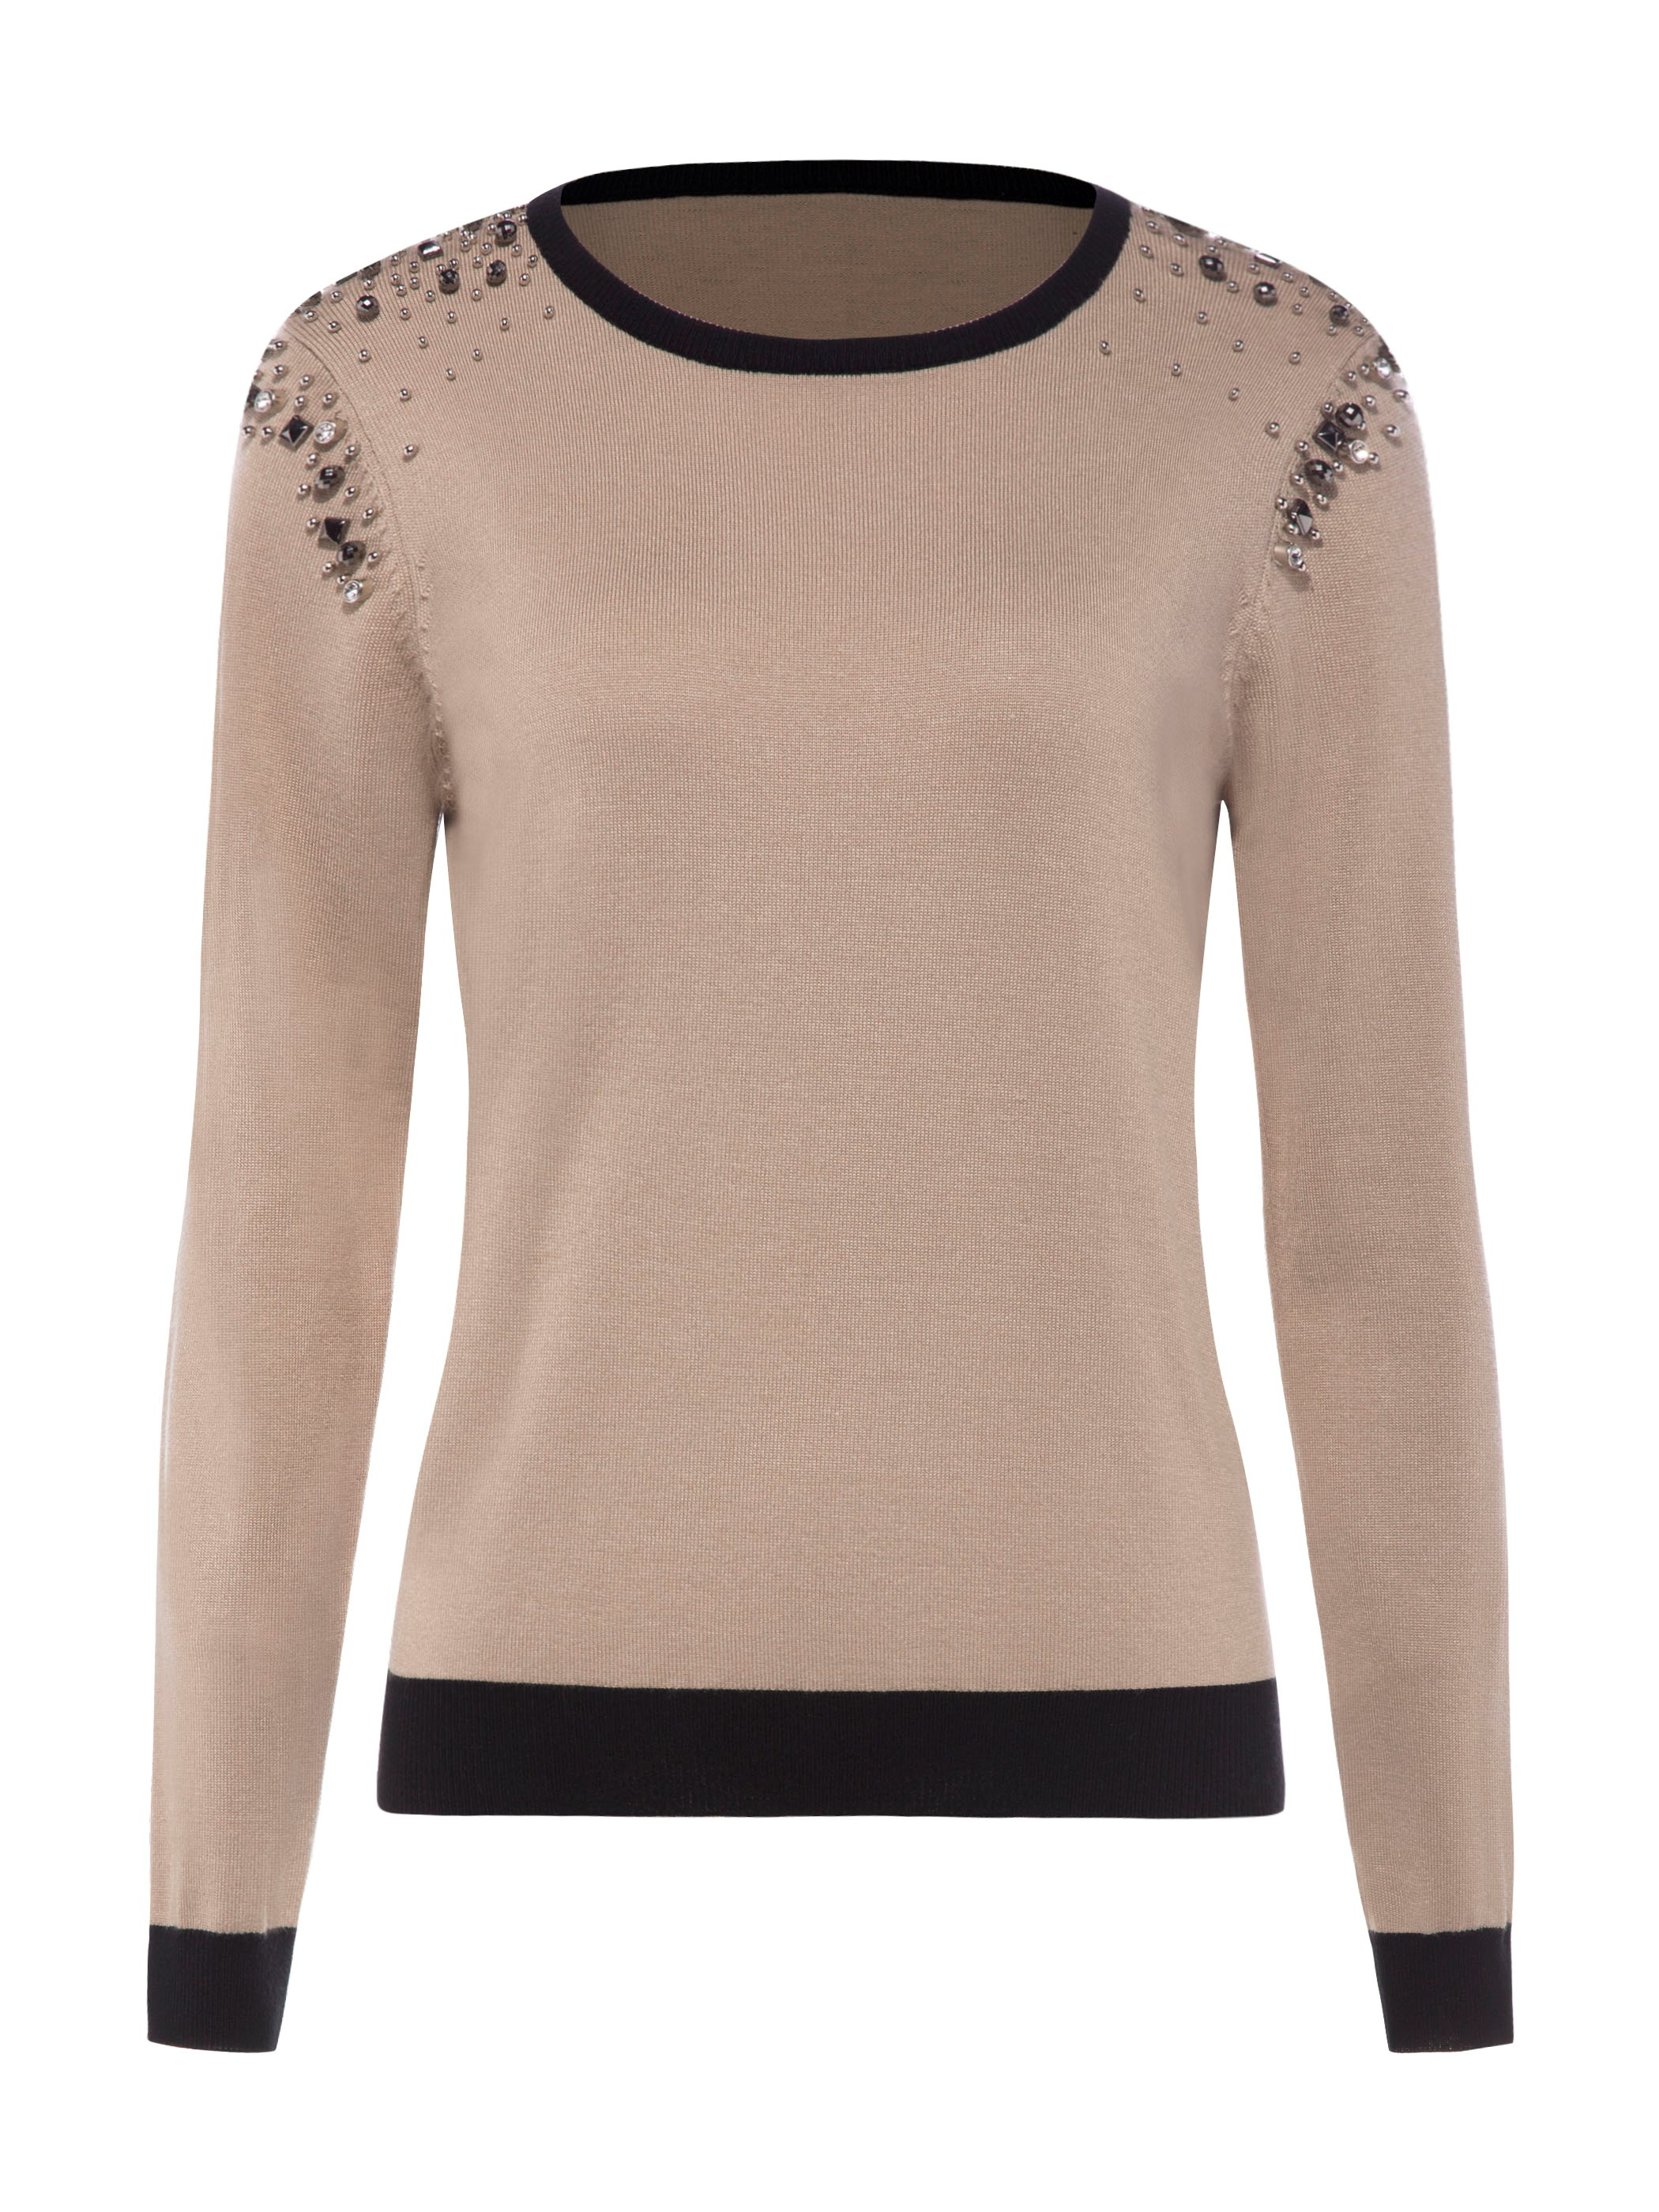 Ericdress Round Neck Beading Decorative Pullover Knitwear